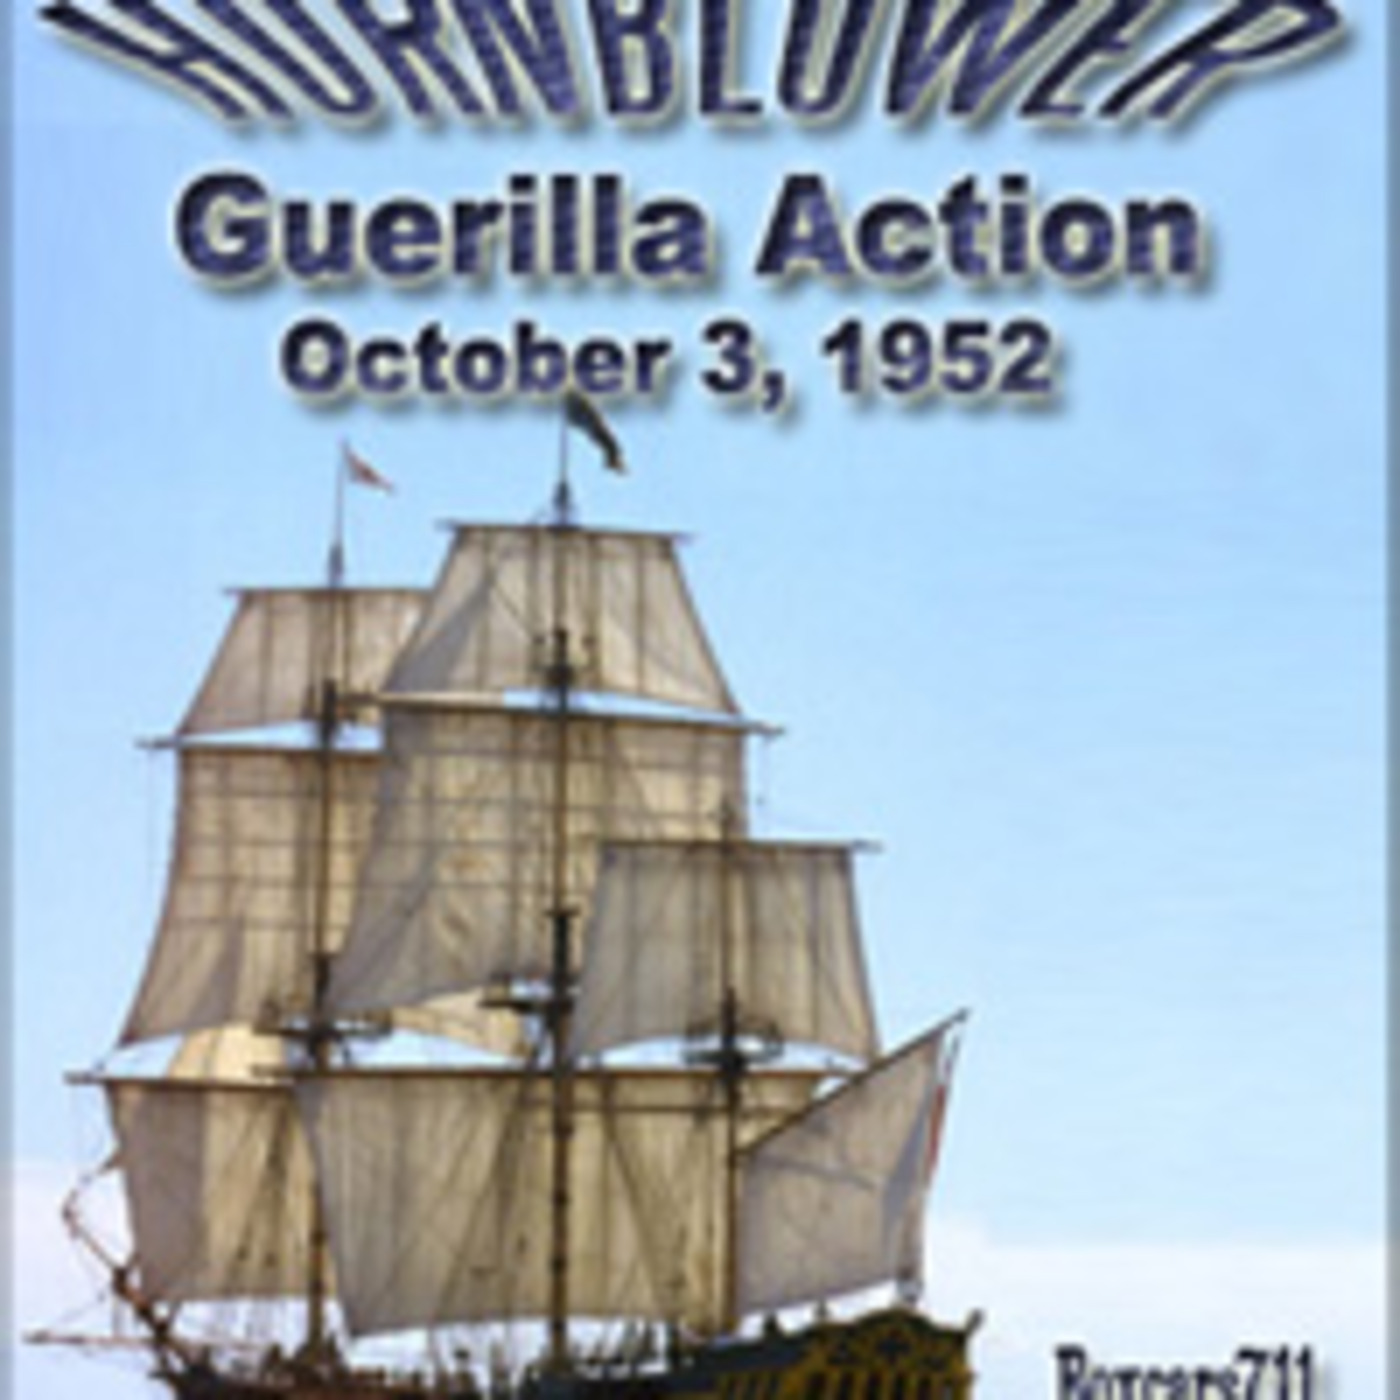 The Adventures Of Horatio Hornblower - Guerilla Action (10-03-52)